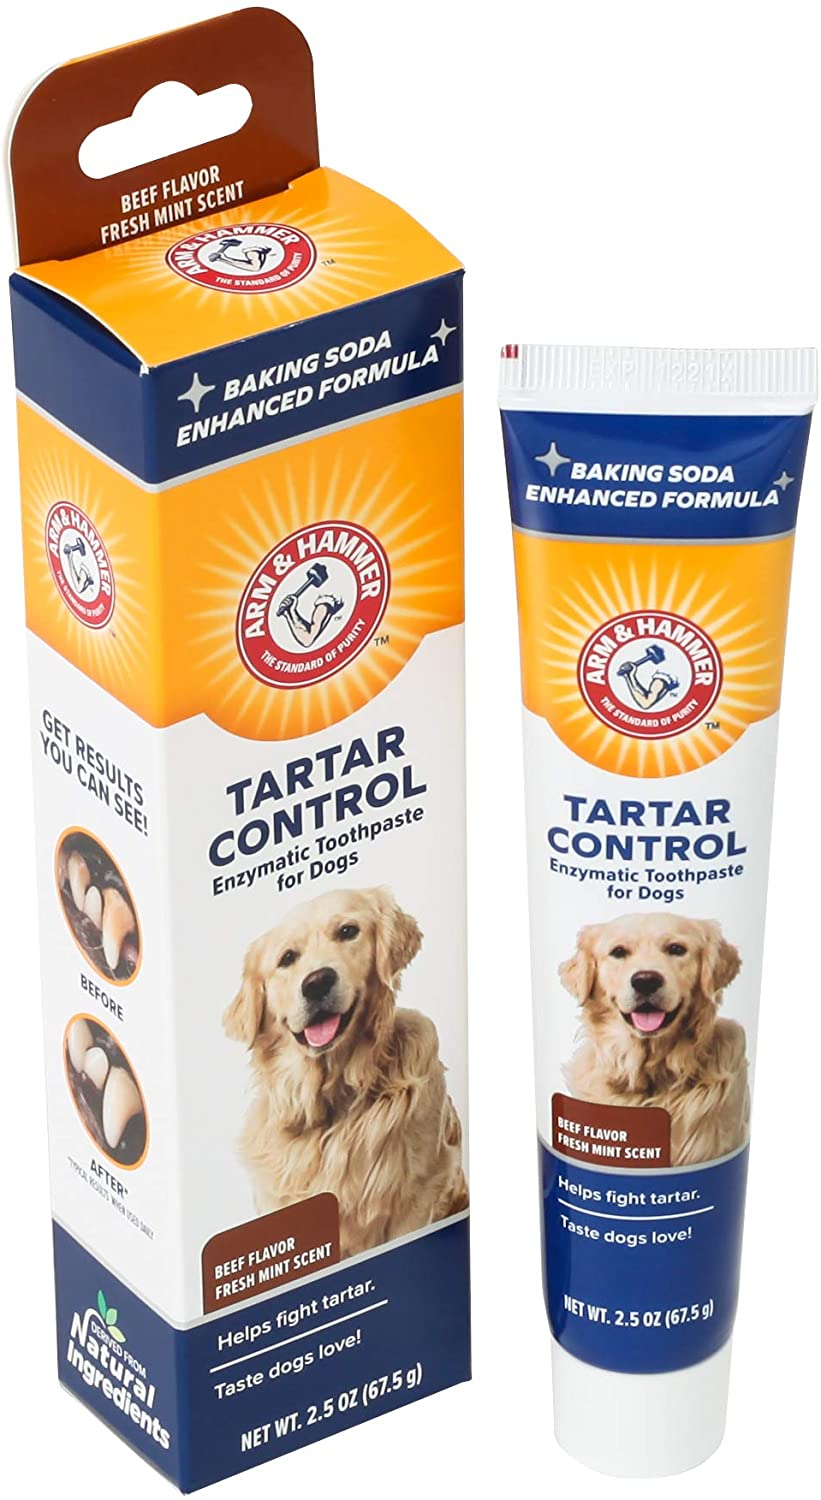 Arm & Hammer Dog Dental Care Toothpaste for Dogs | No More Doggie Breath with Enzymatic Dog Toothpaste for Dogs in Chicken Flavor with Fresh Mint Scent | Dog Toothpaste is Safe for Puppies